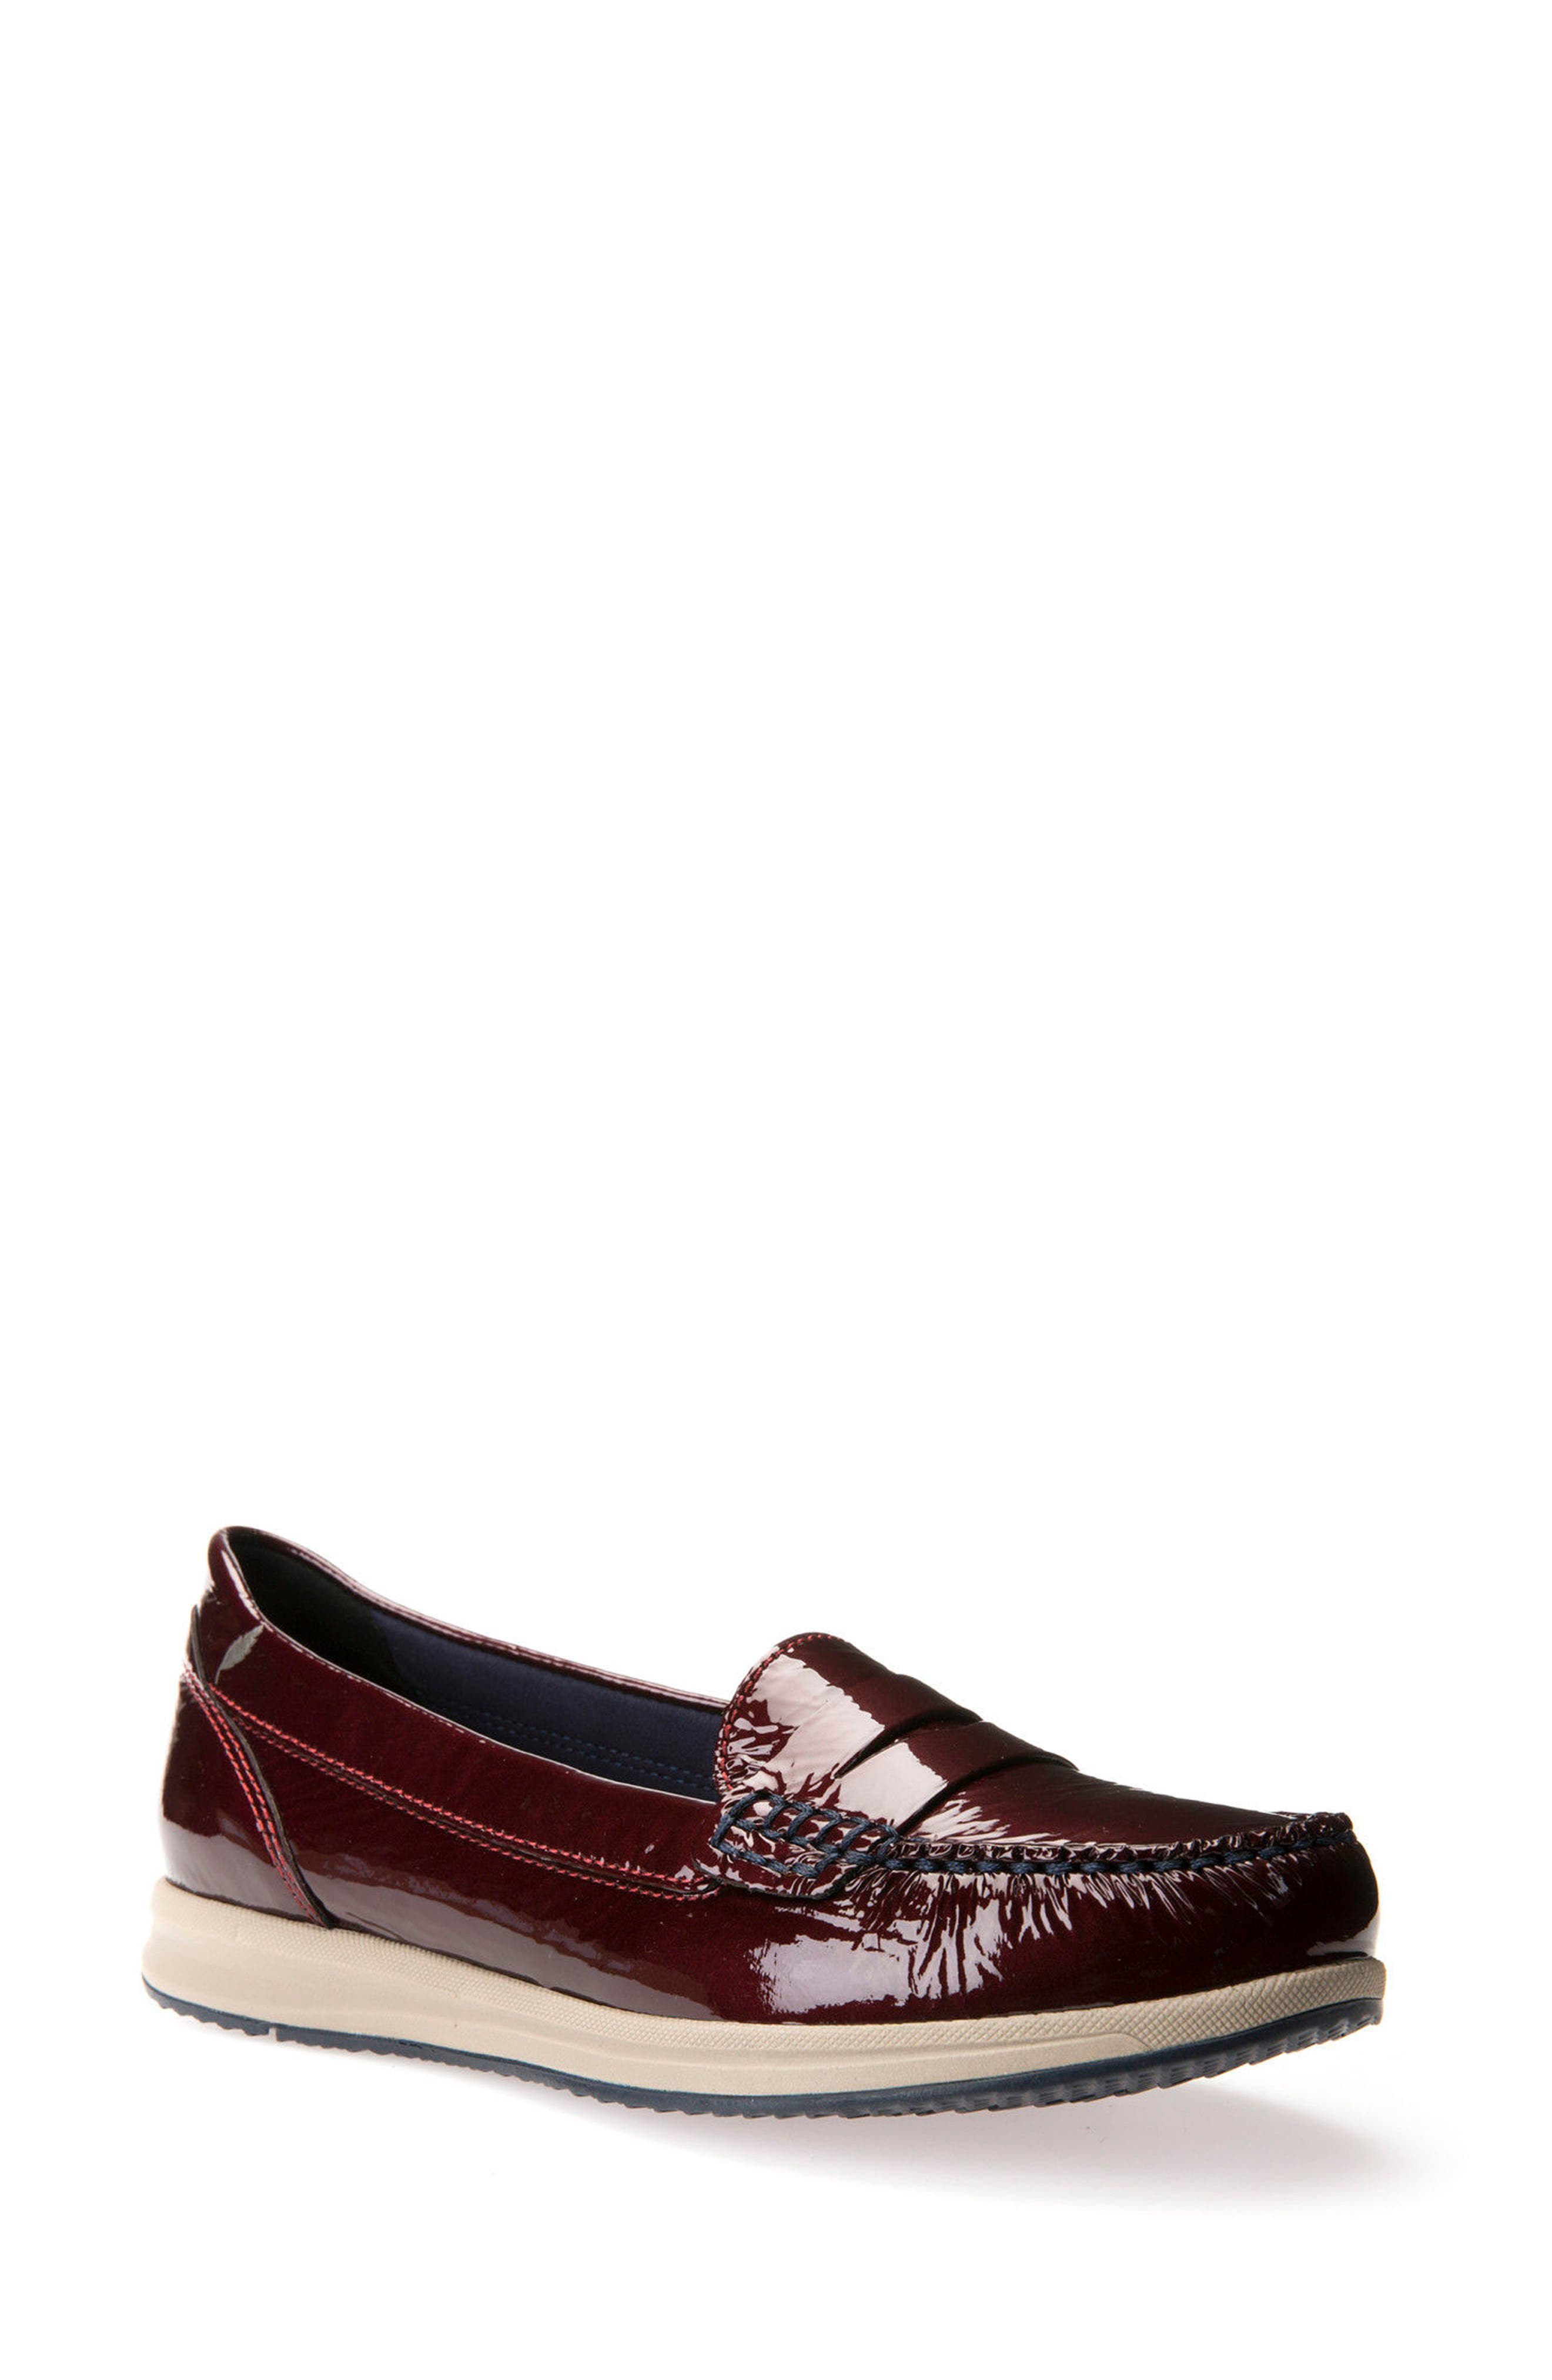 Avery Loafer,                         Main,                         color, 935